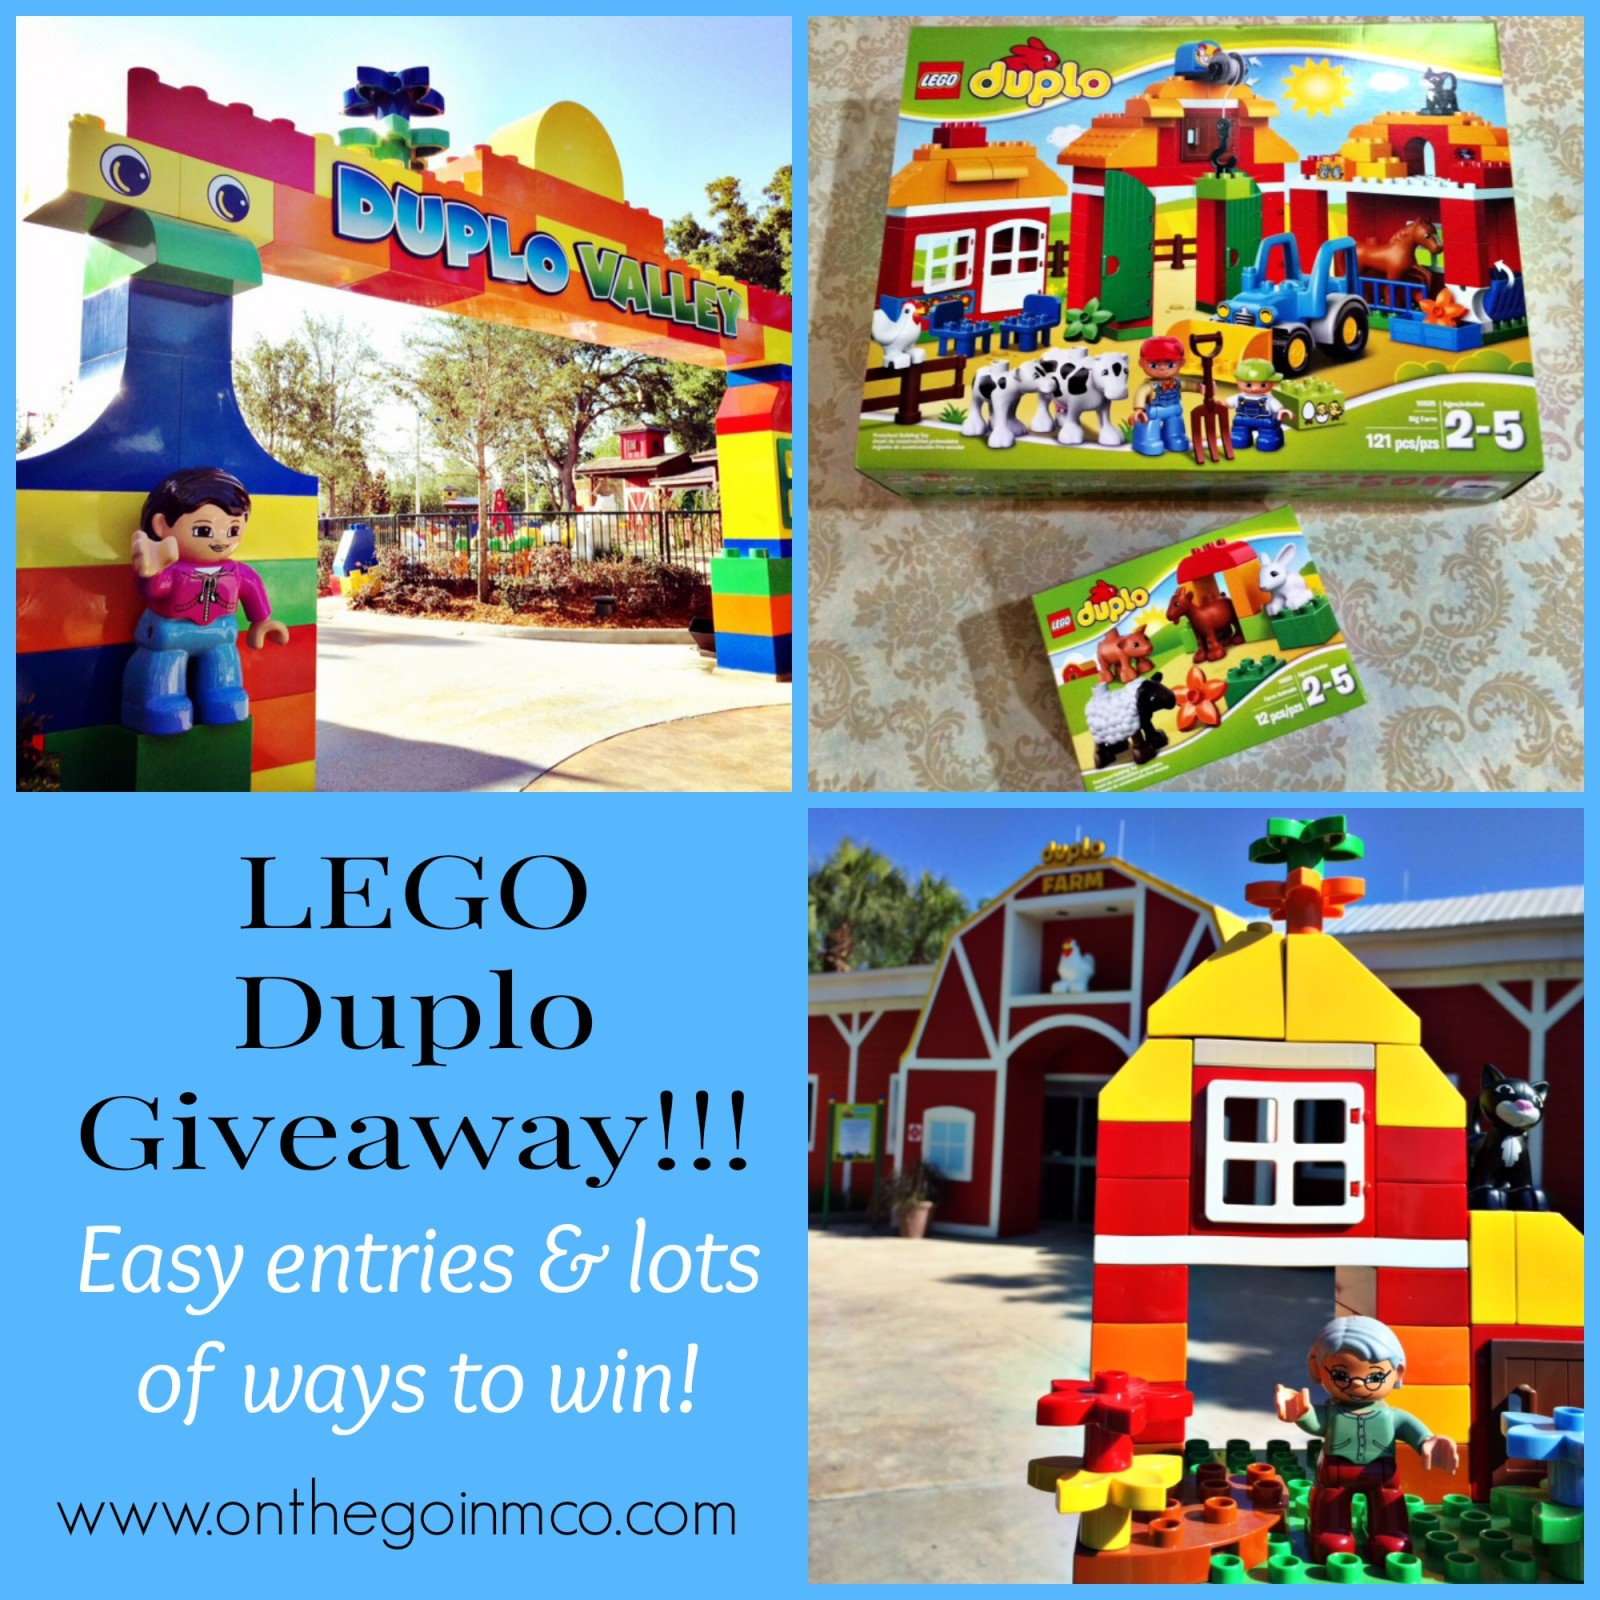 LEGOLAND Florida Duplo Valley Giveaway.jpg